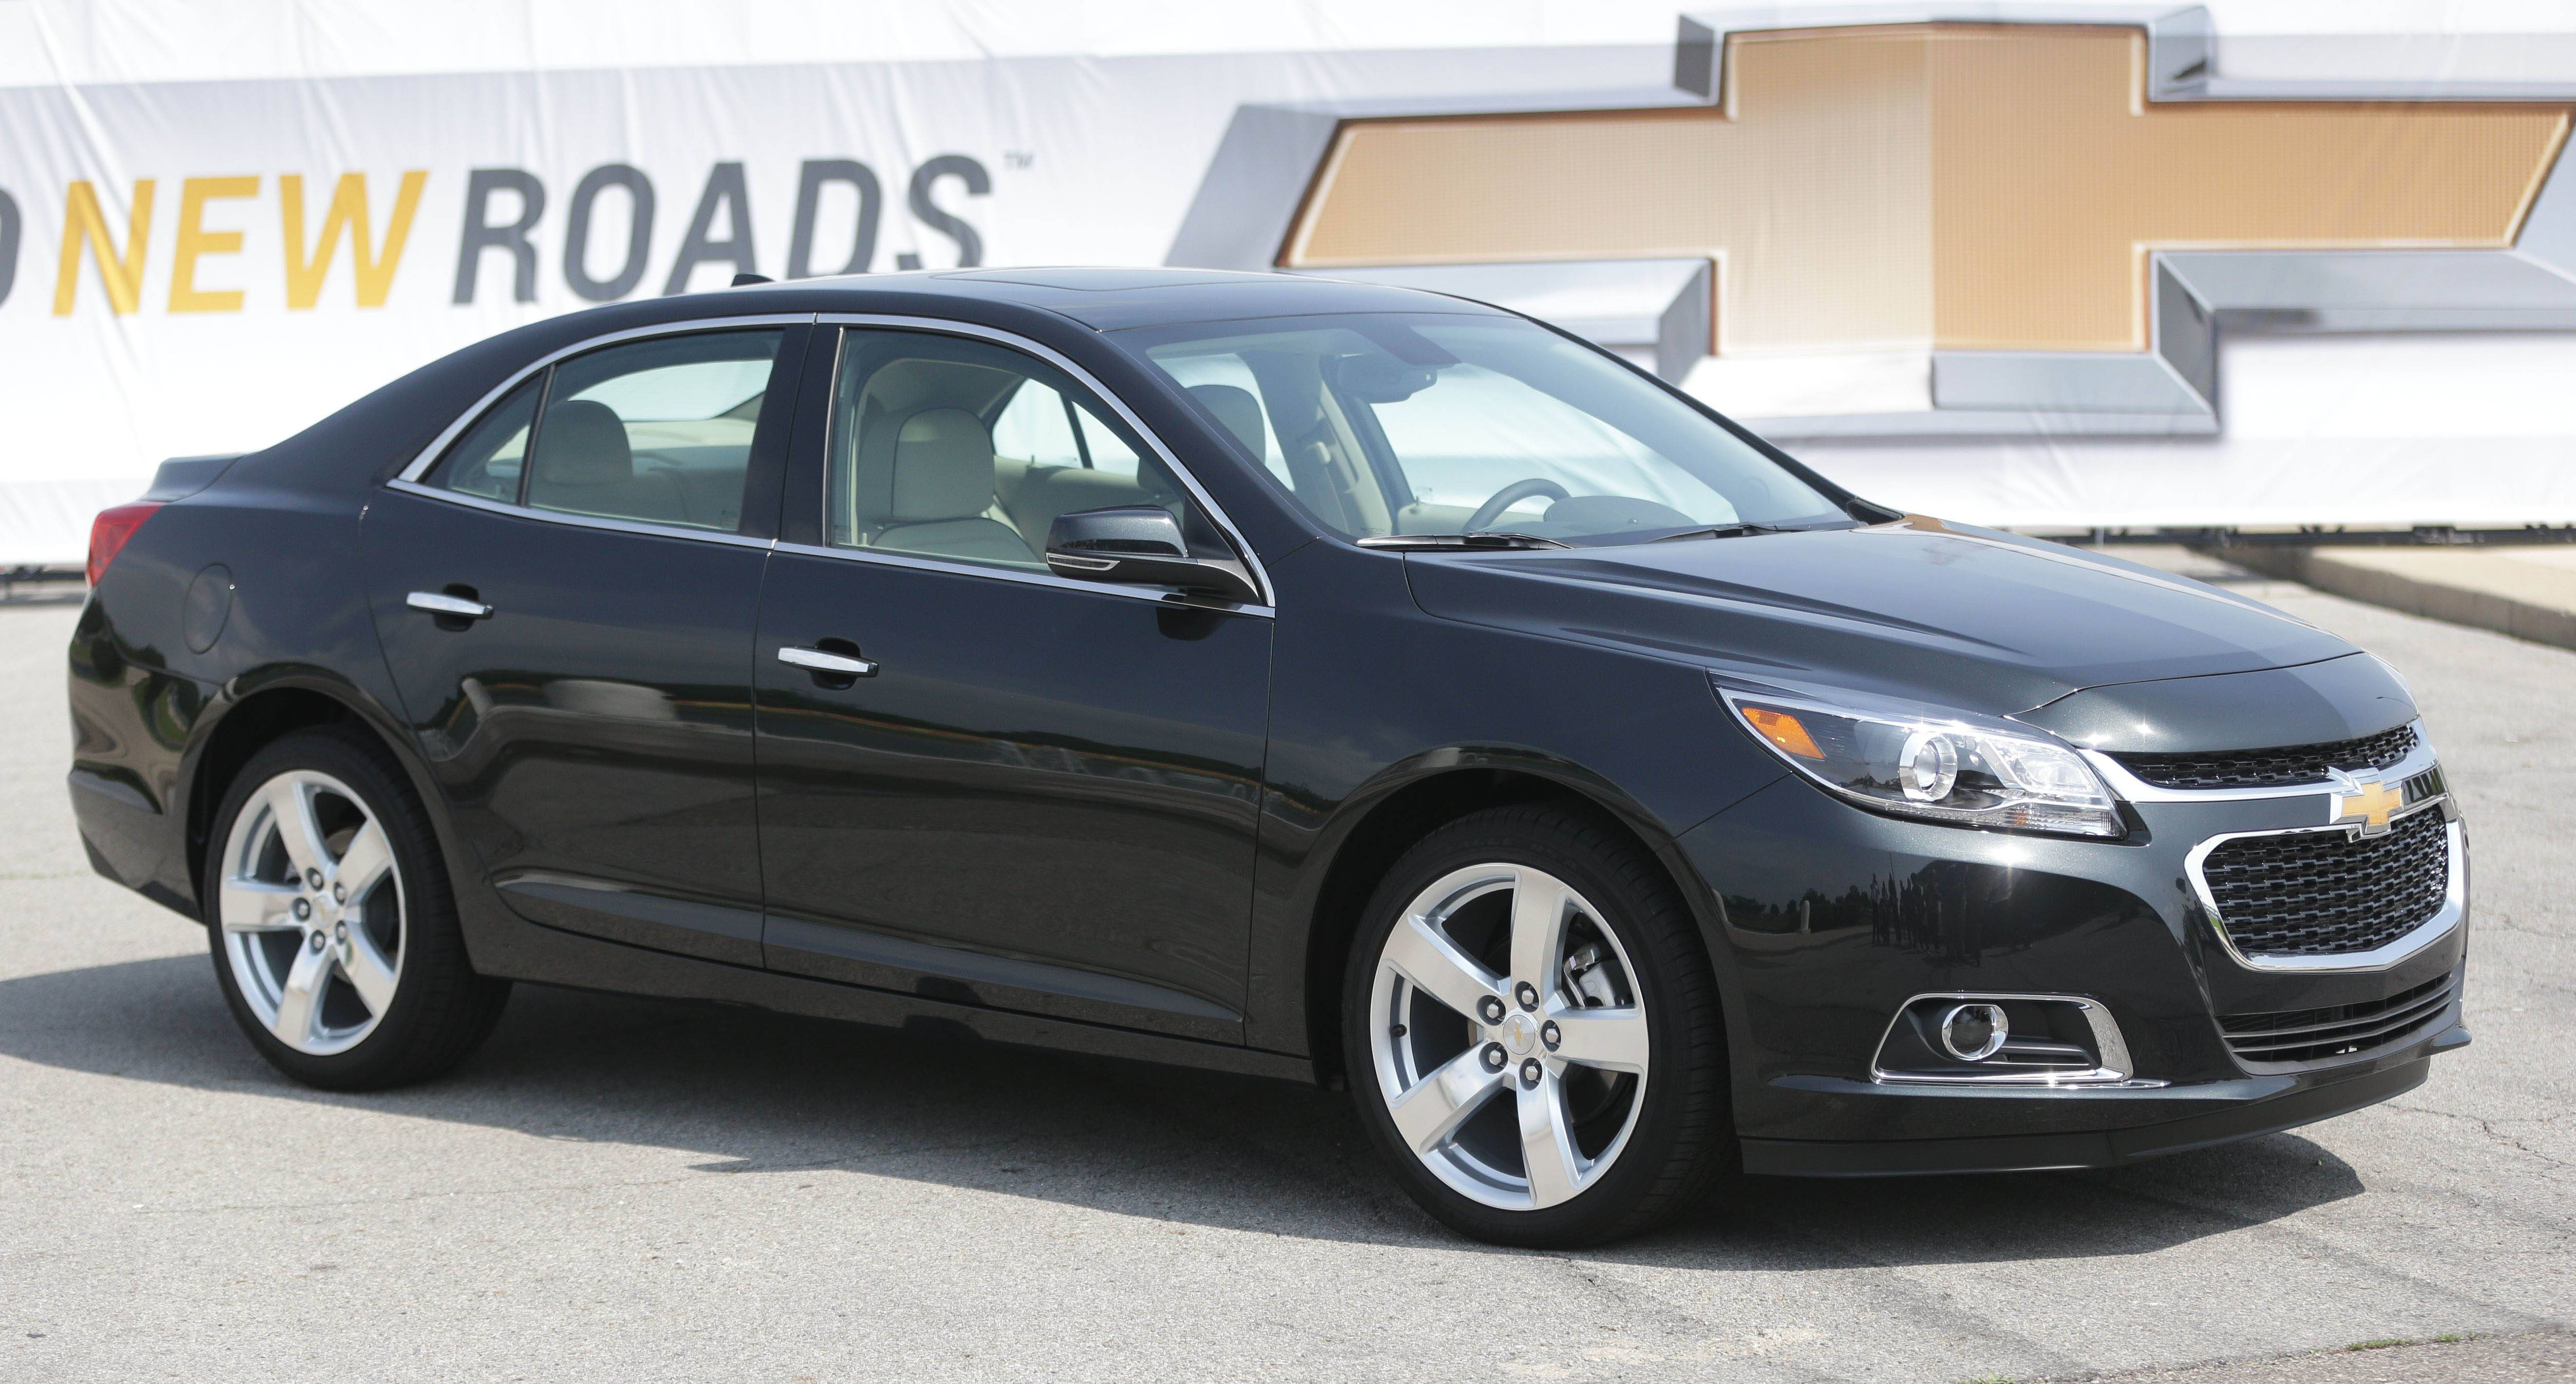 General Motors is recalling more than 140,000 2014 Chevrolet Malibu midsize cars to fix a problem with the power-assisted brakes.